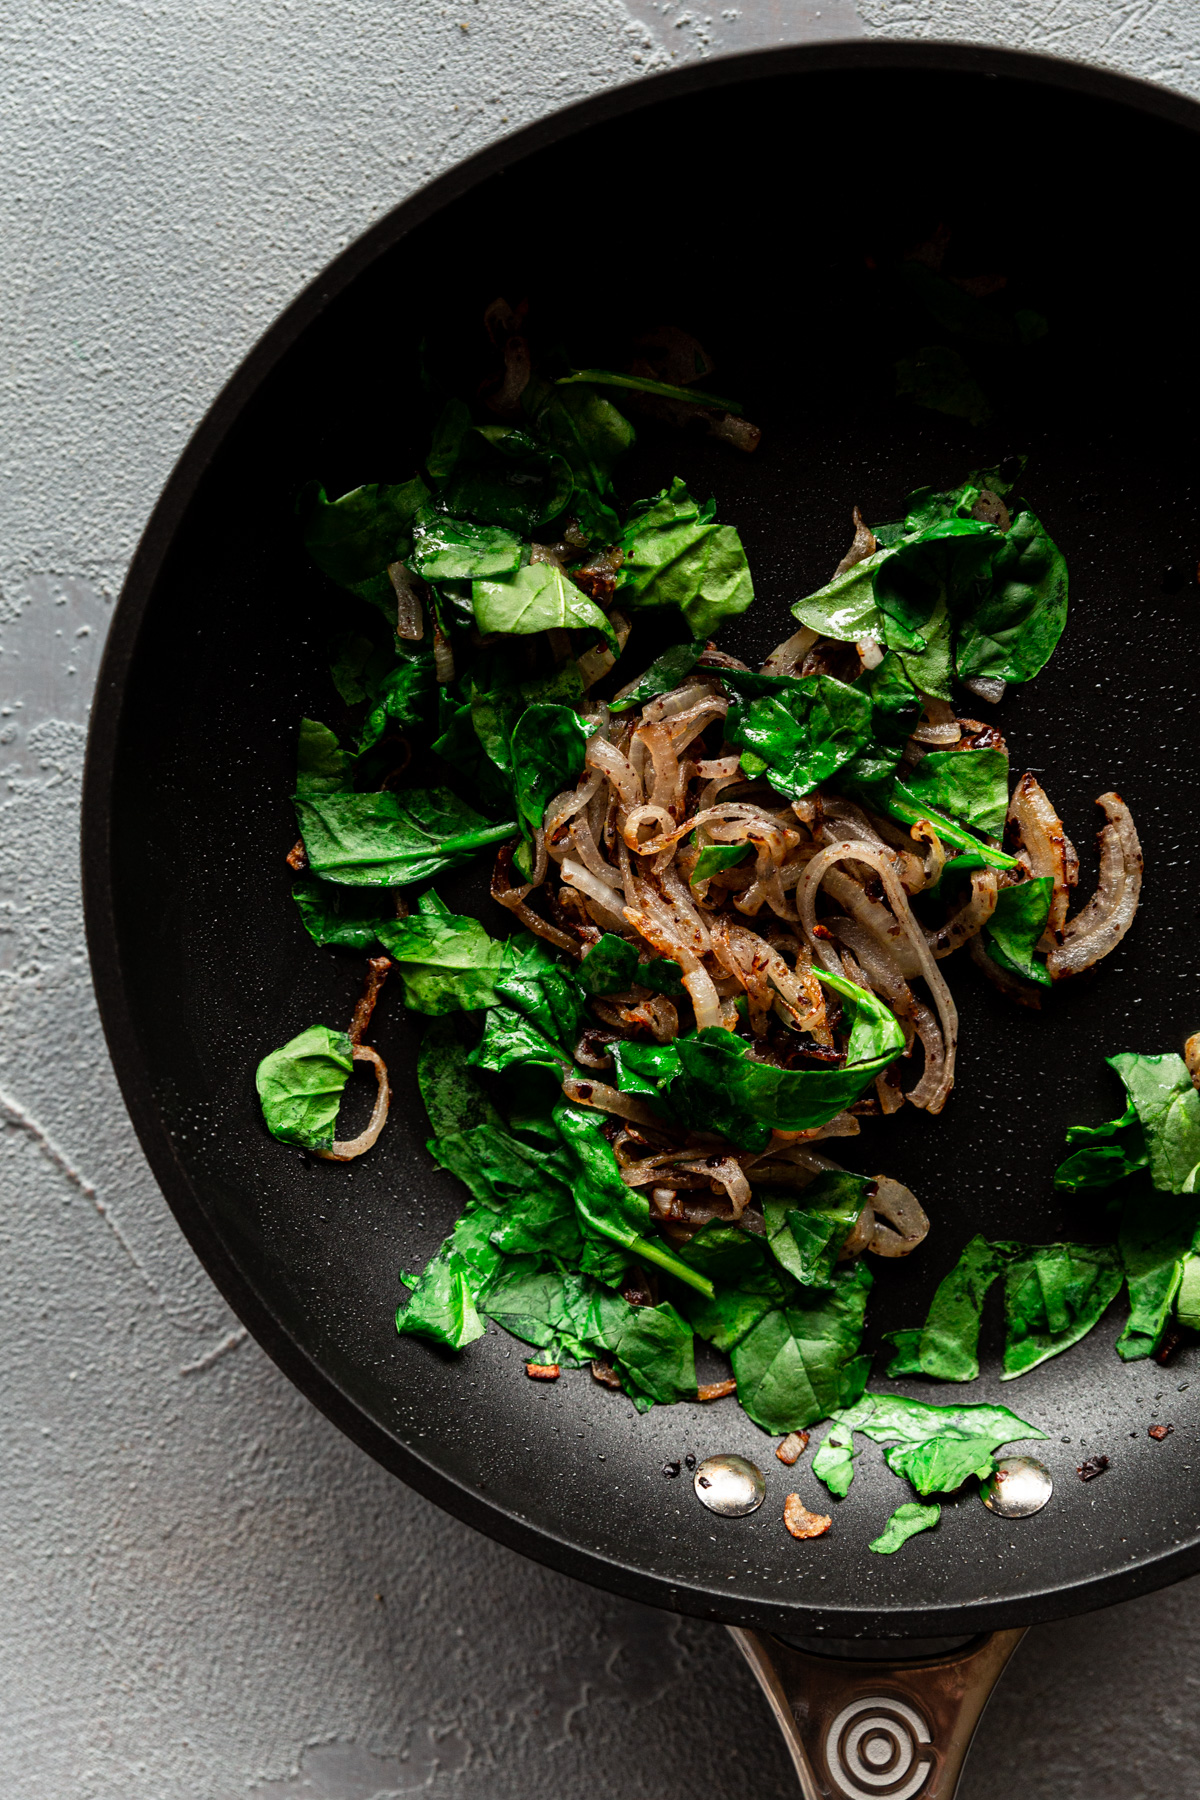 a skillet with sumac caramelized onions and wilted spinach